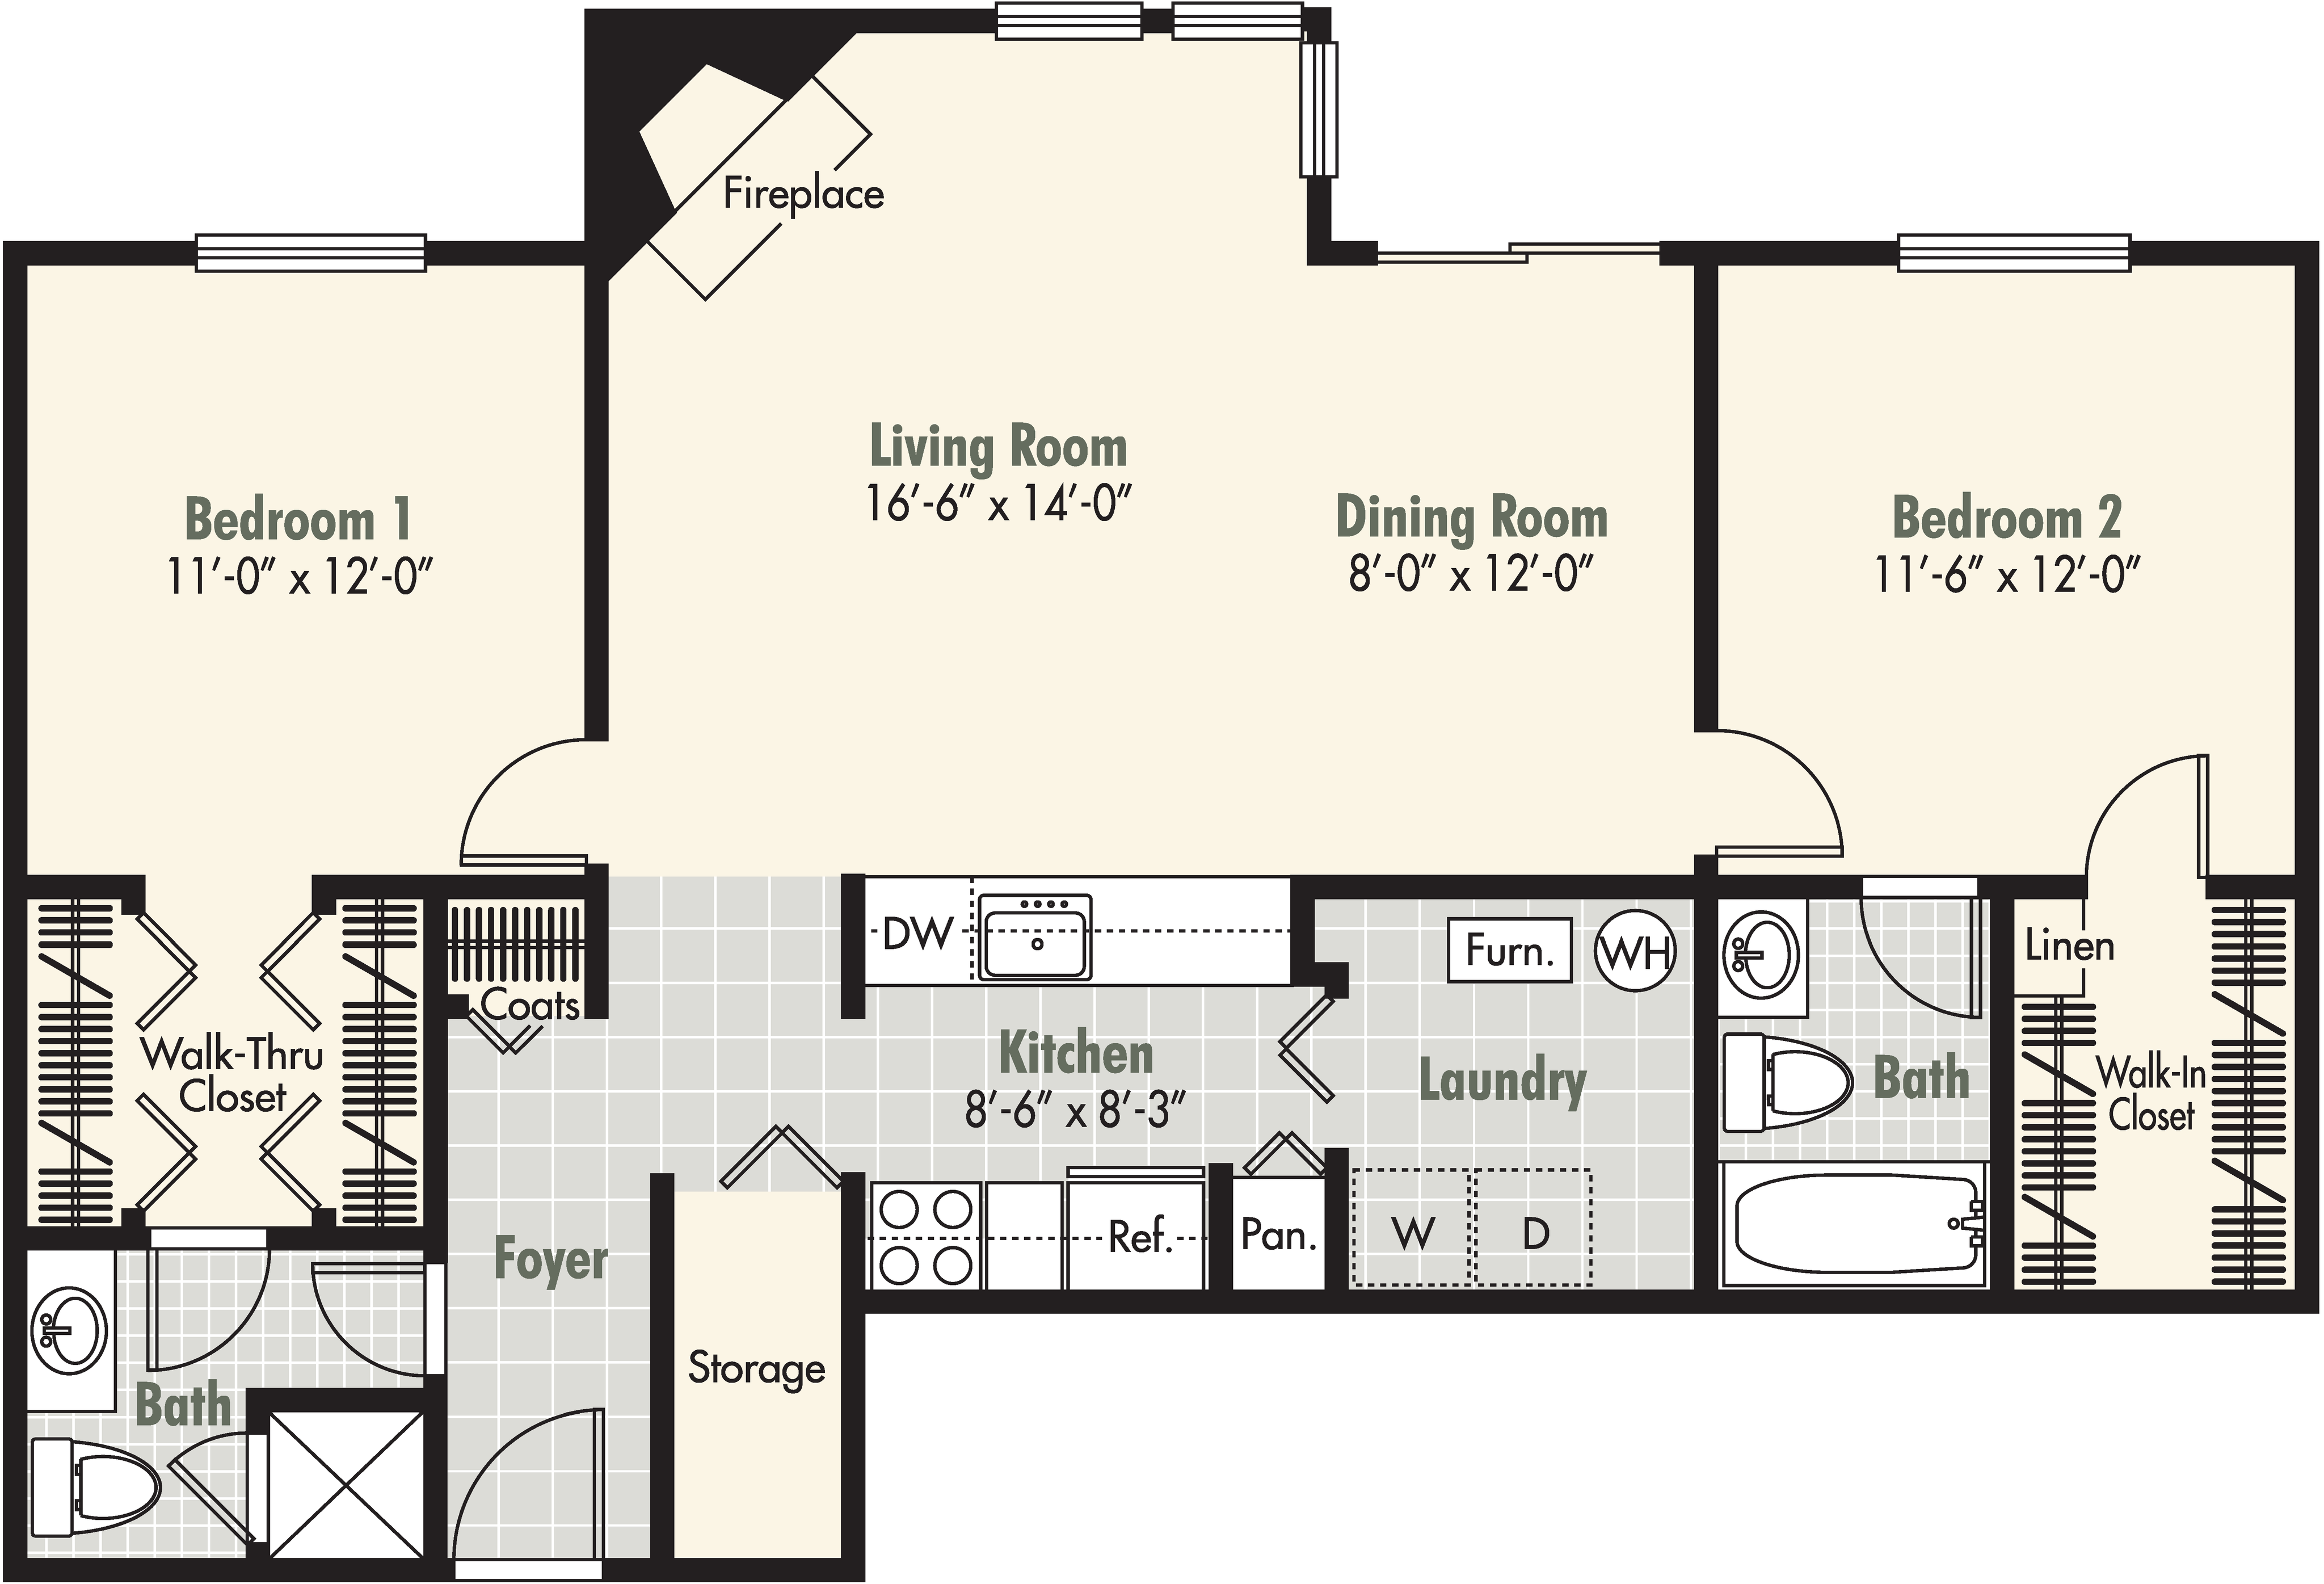 2 Bedroom - 2 Bath